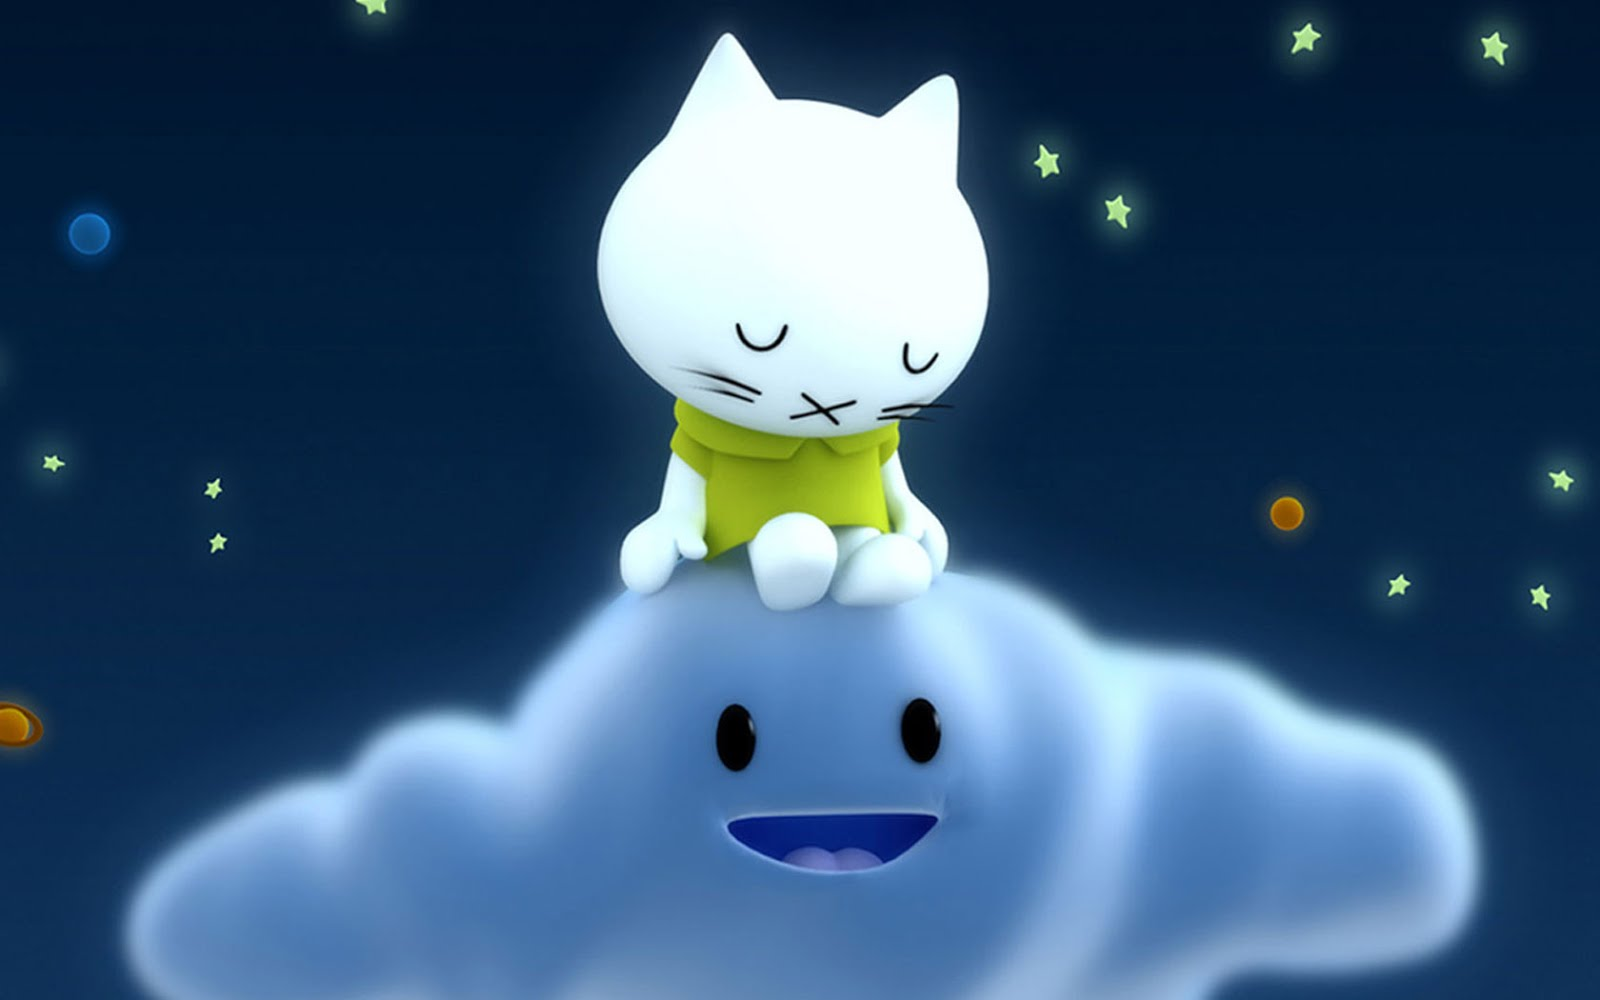 Cute Animated Moving Wallpapers For Desktop